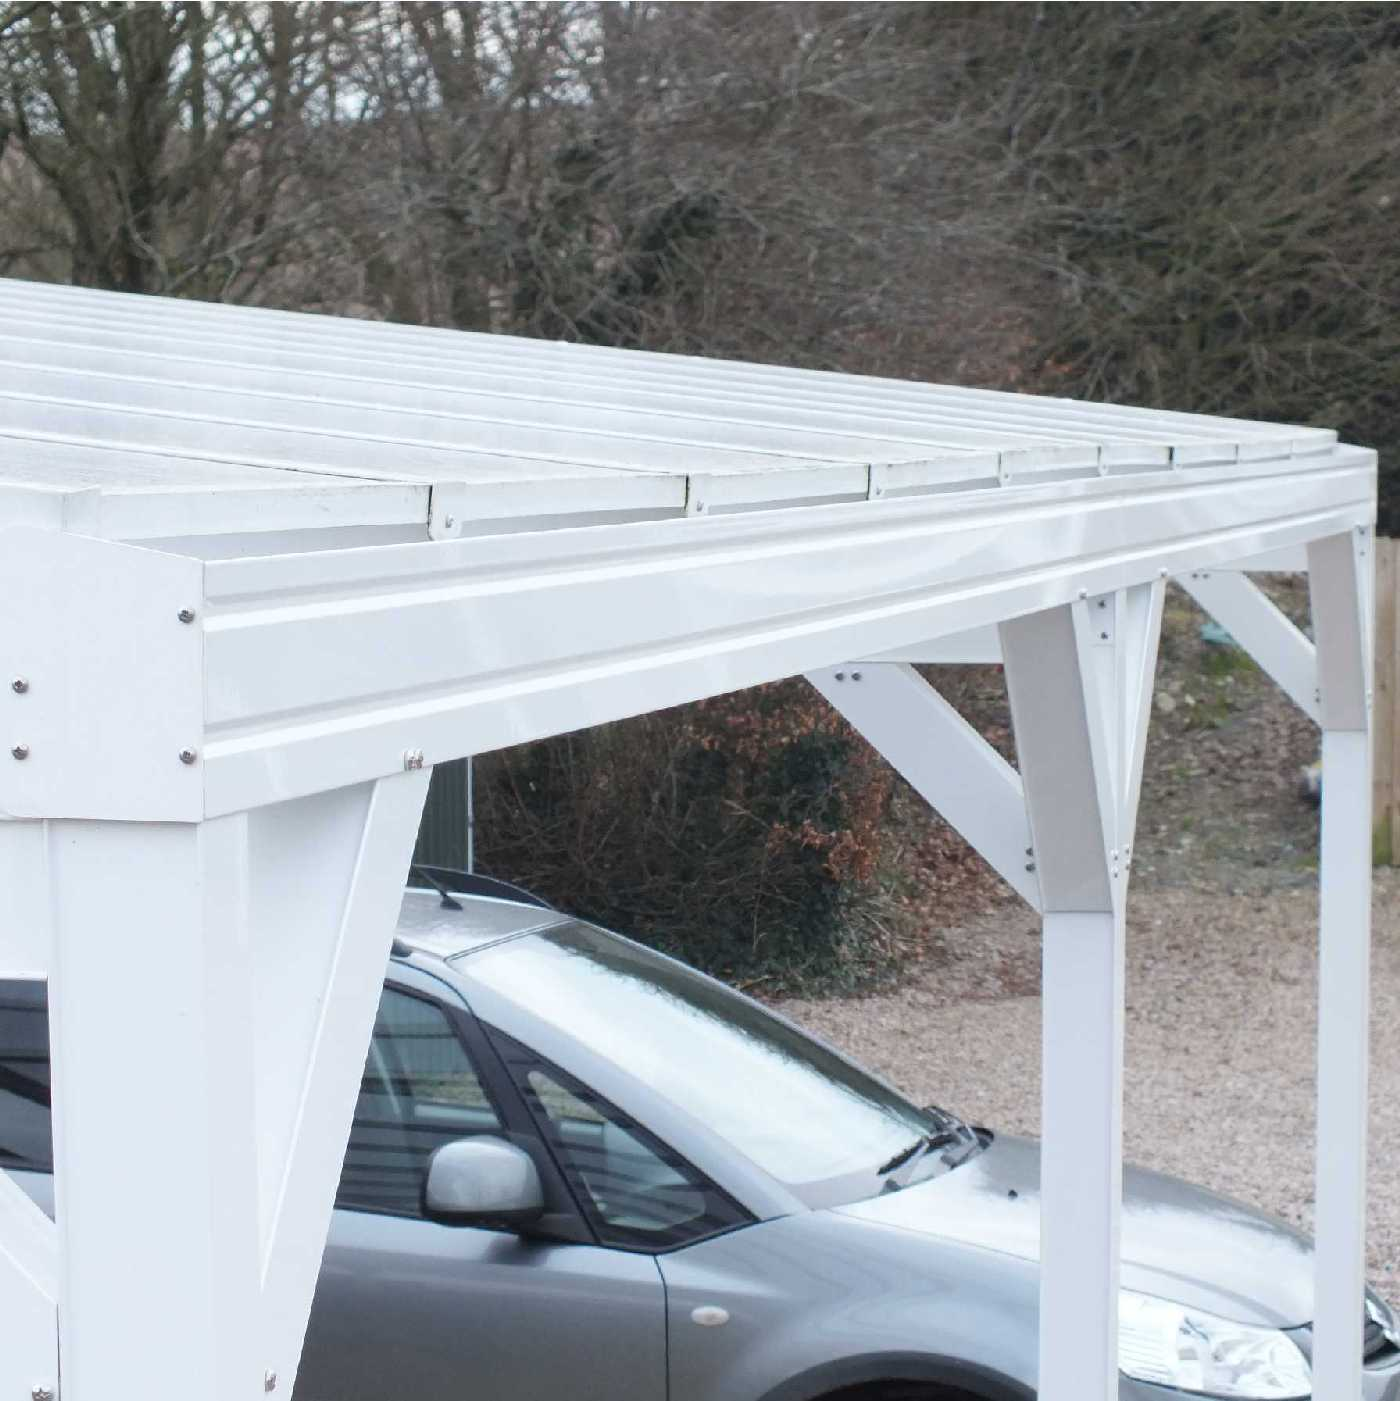 Omega Smart Free-Standing, MonoPitch Roof Canopy with 16mm Polycarbonate Glazing - 6.3m (W) x 3.0m (P), (8) Supporting Posts from Omega Build